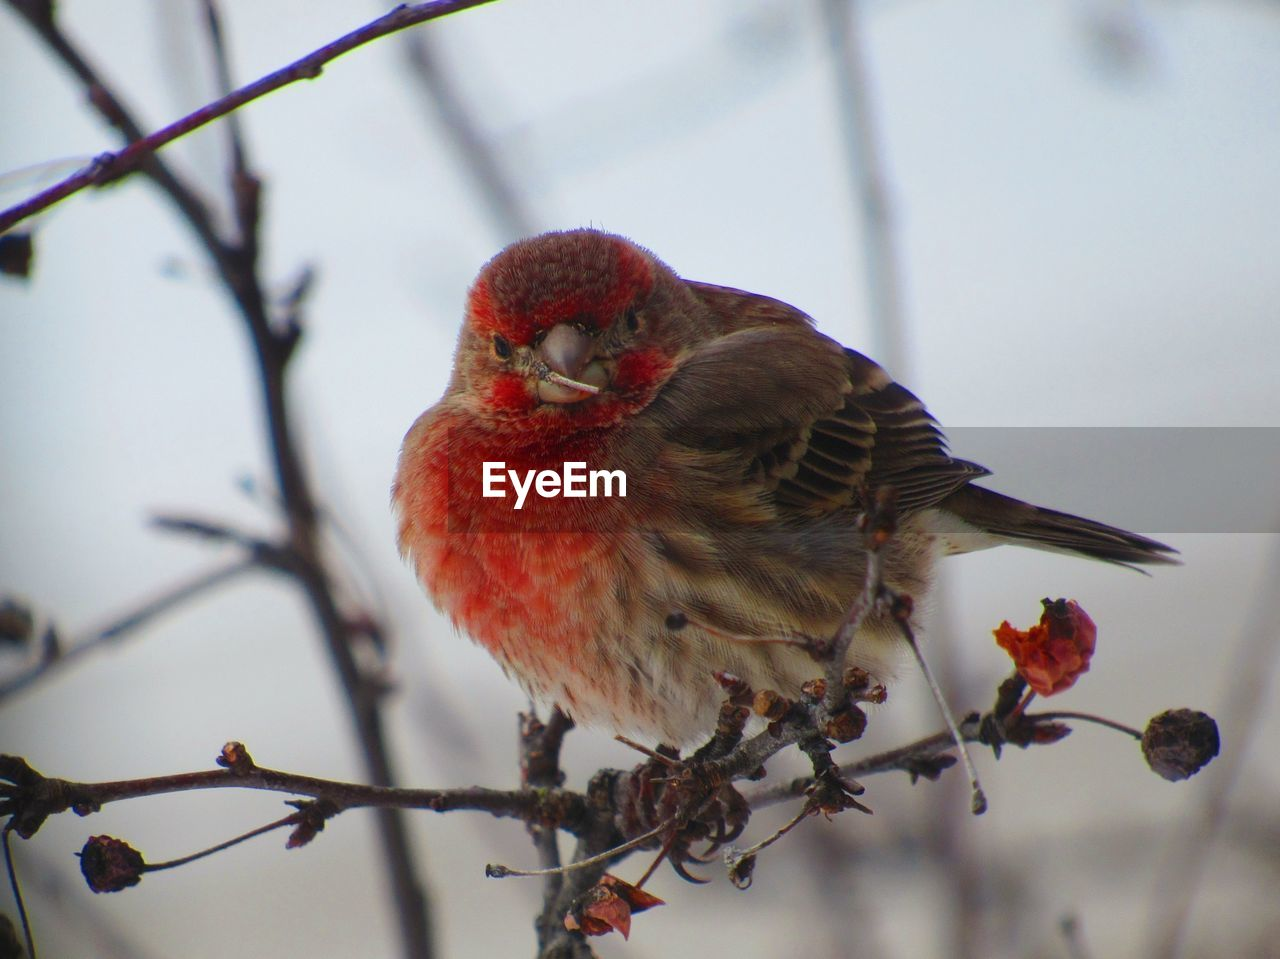 bird, animal themes, vertebrate, perching, one animal, animal, branch, red, plant, tree, focus on foreground, animals in the wild, day, animal wildlife, twig, cardinal - bird, close-up, no people, nature, outdoors